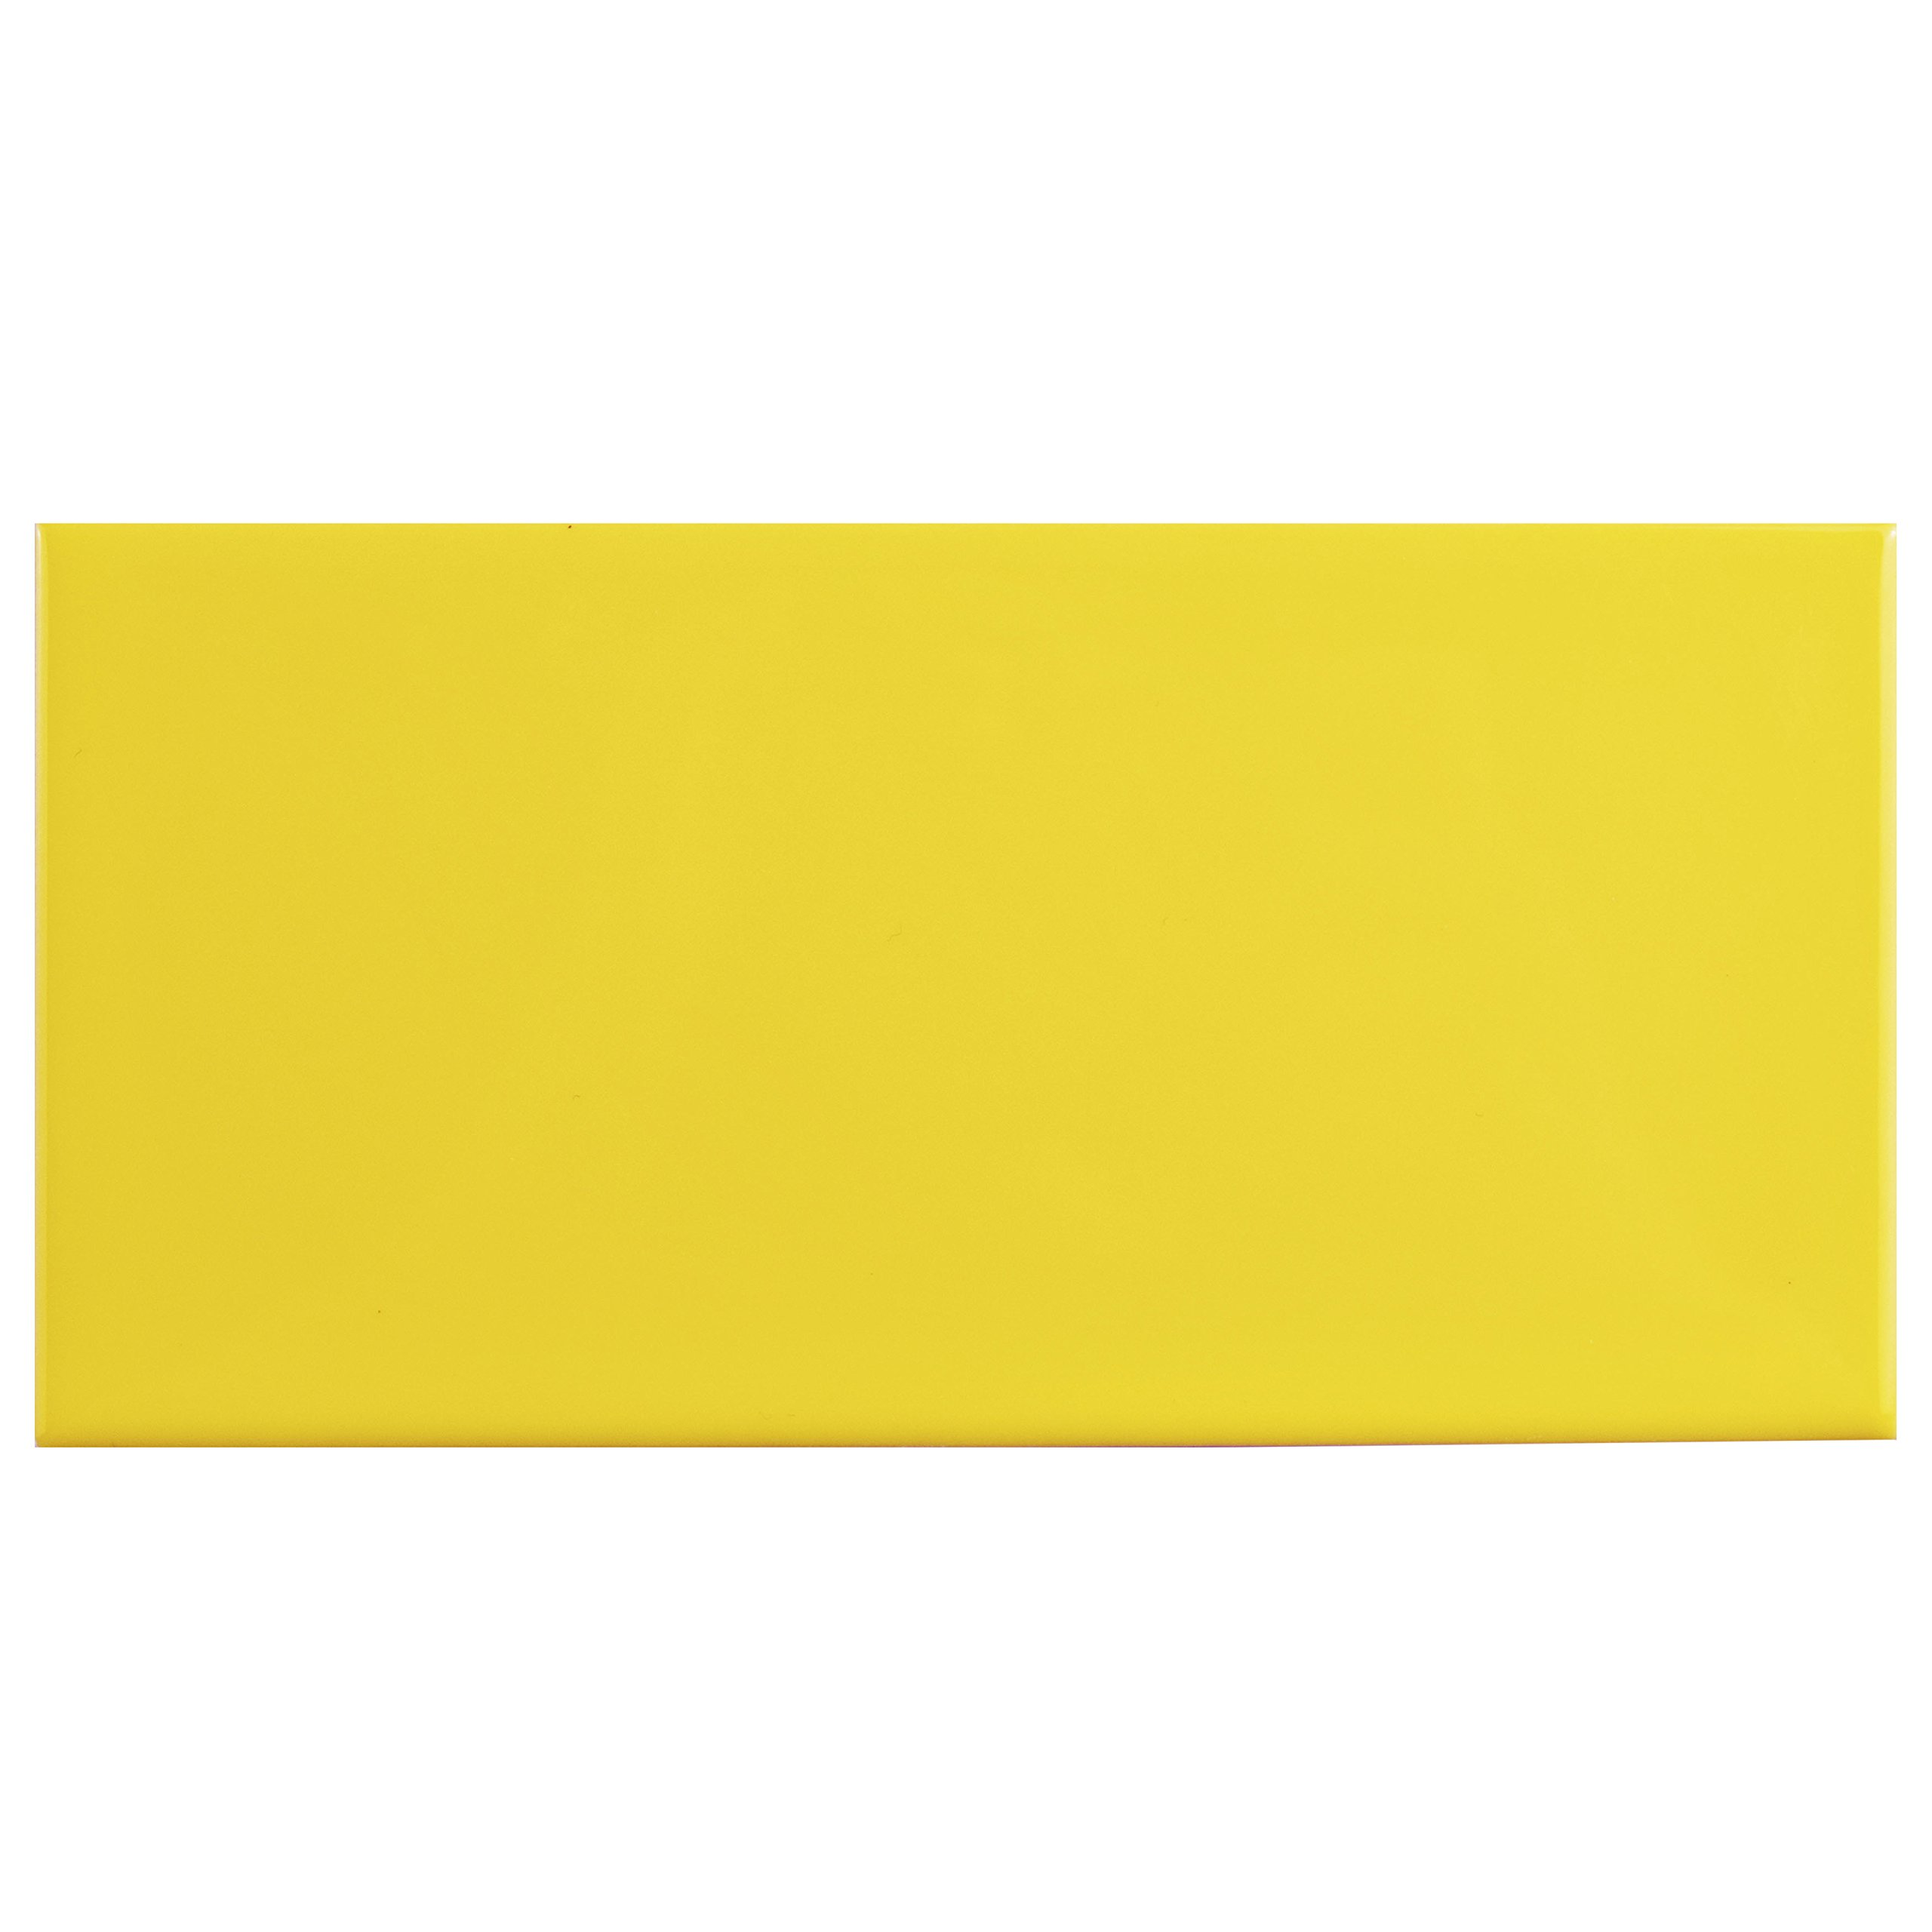 SomerTile WXR3PSCY Pente Subway Ceramic Wall Tile, 3'' x 6'', Glossy Canary Yellow